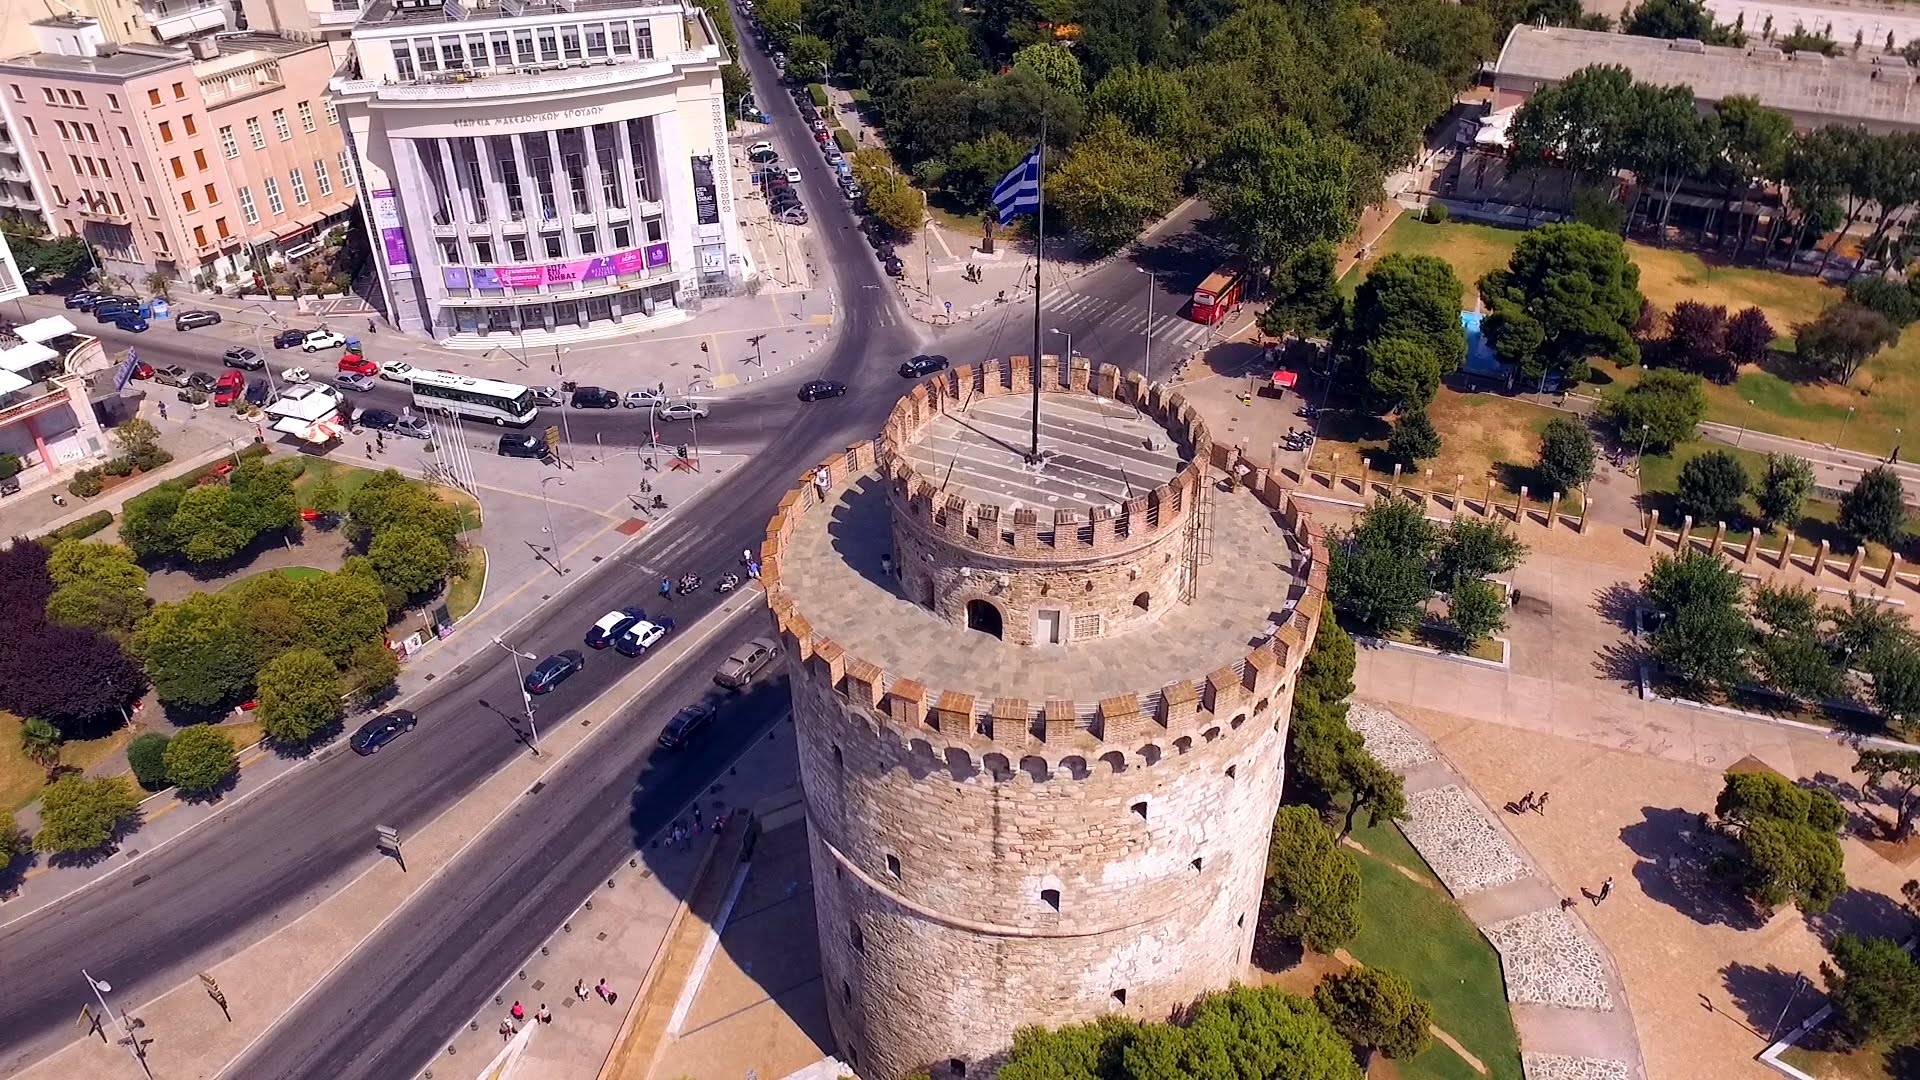 5+1 Ottoman Buildings to Visit in Thessaloniki